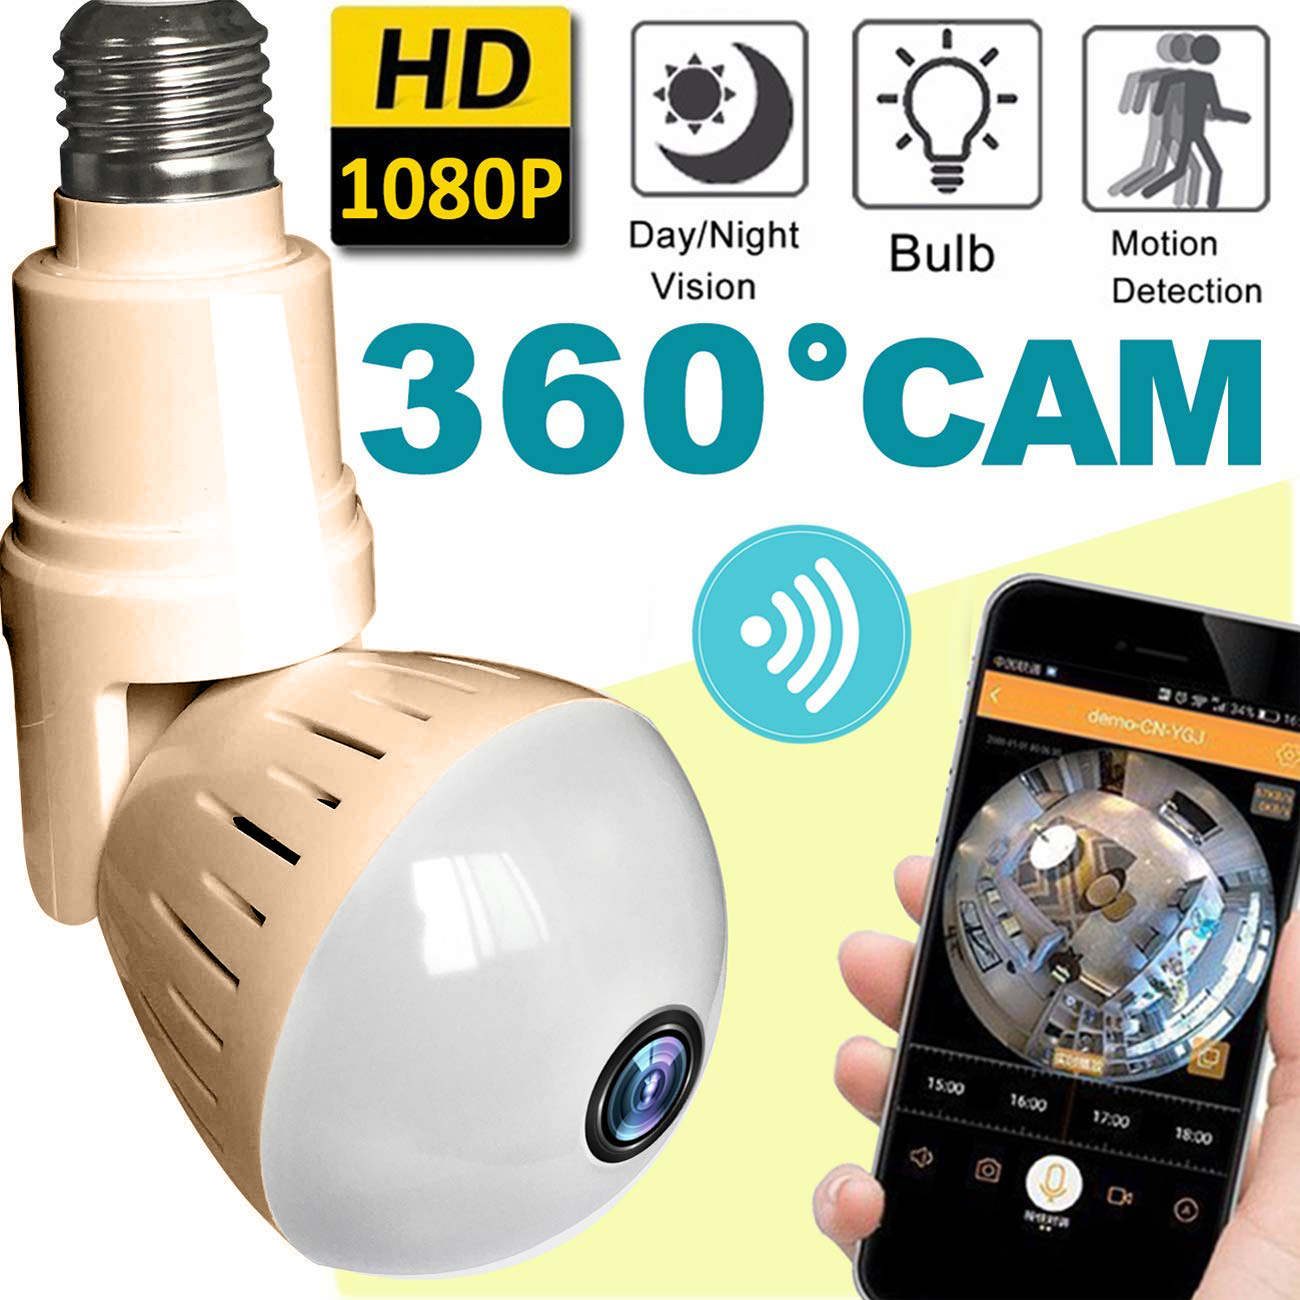 2018 Upgrade Bulb WiFi Camera Wireless Hidden Cameras 360 Panoramic for Home Security System Baby Nanny Pet Indoor with Night Vision Motion Smartphone Smart Home Gifts